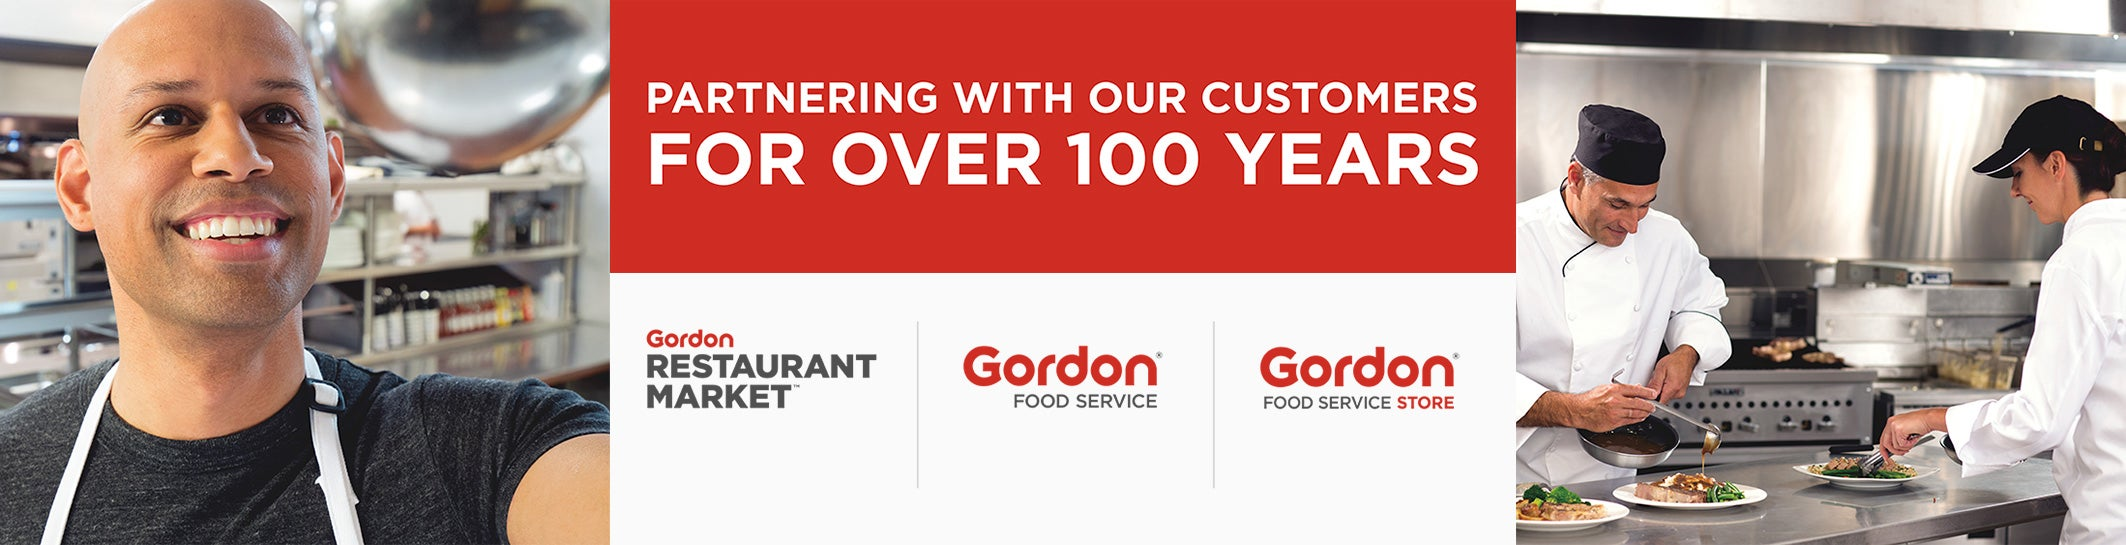 About Gordon Food Service Store